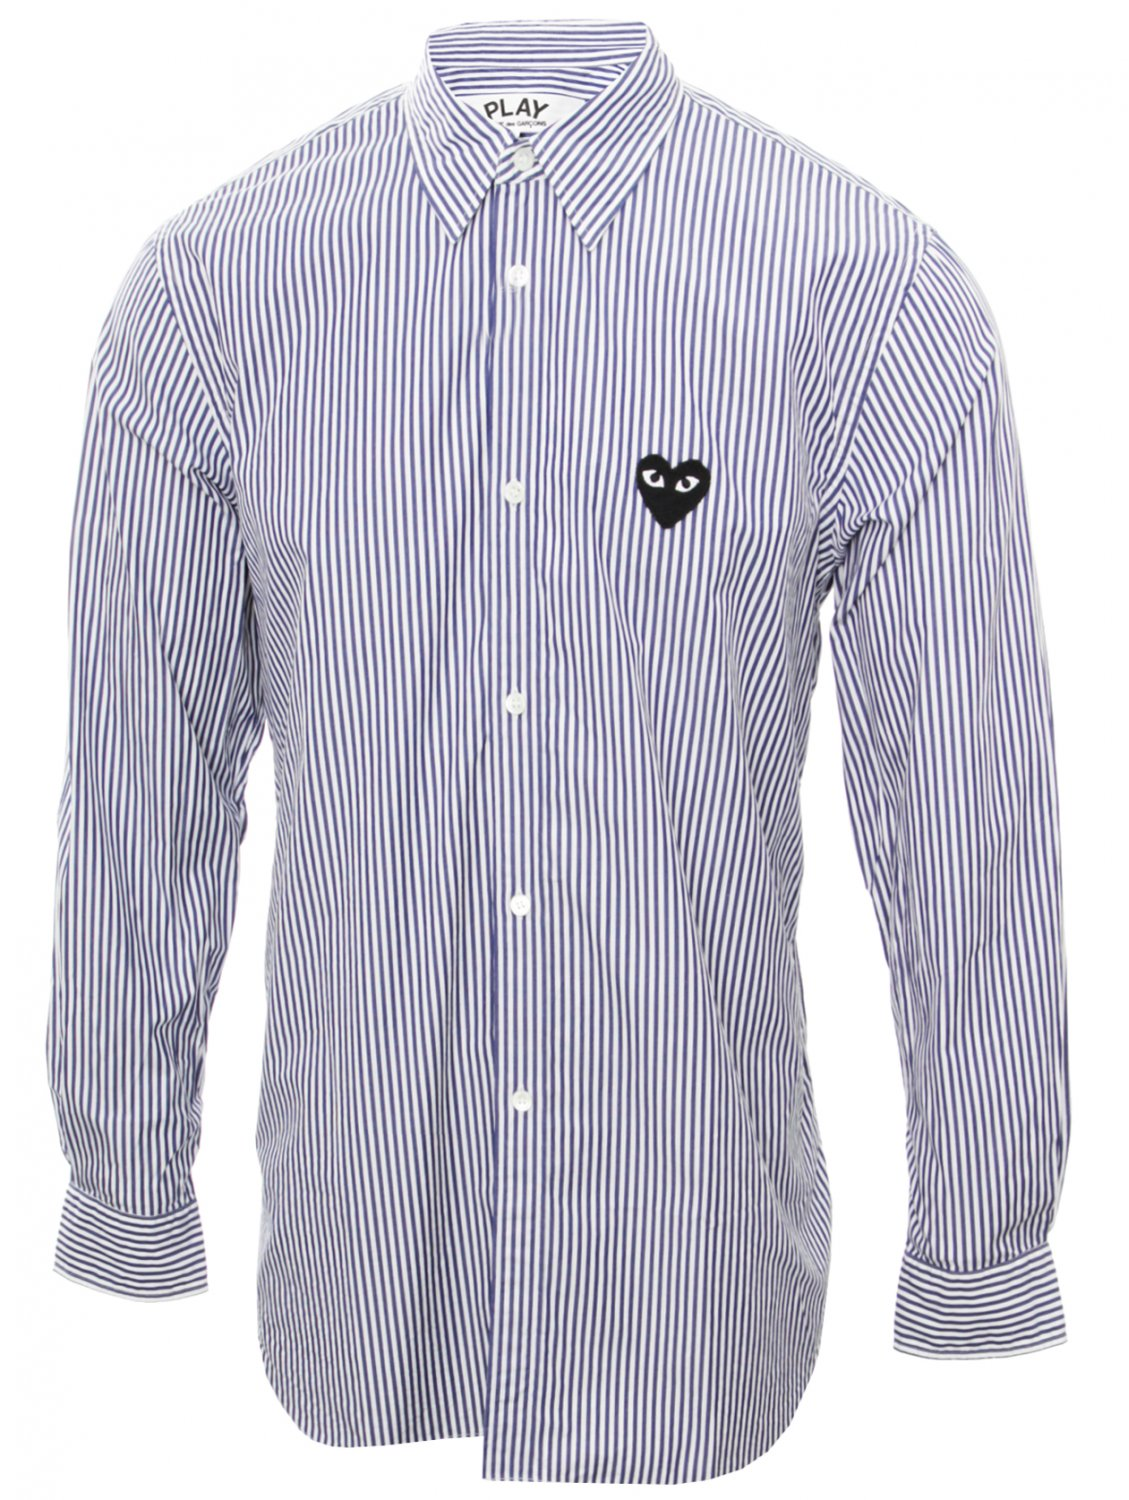 comme des gar ons play mens stripe shirt with black heart. Black Bedroom Furniture Sets. Home Design Ideas